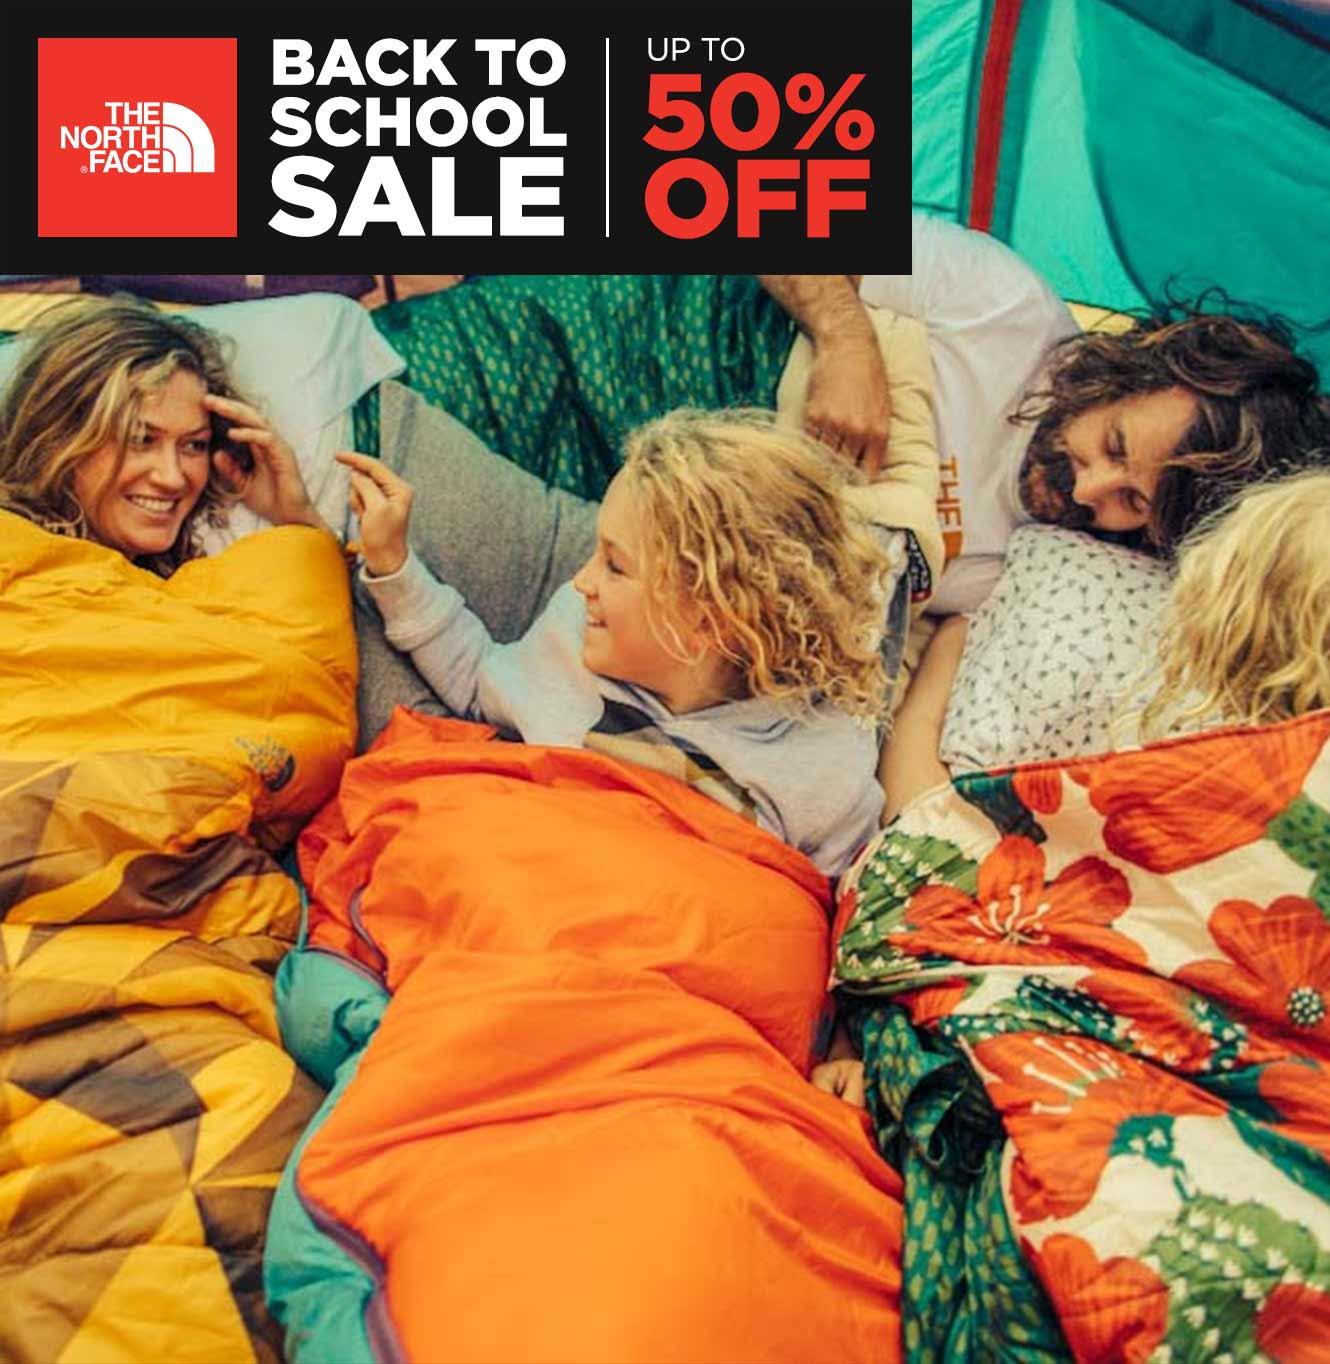 The North Face Back to School Sale: Up to 50% Off